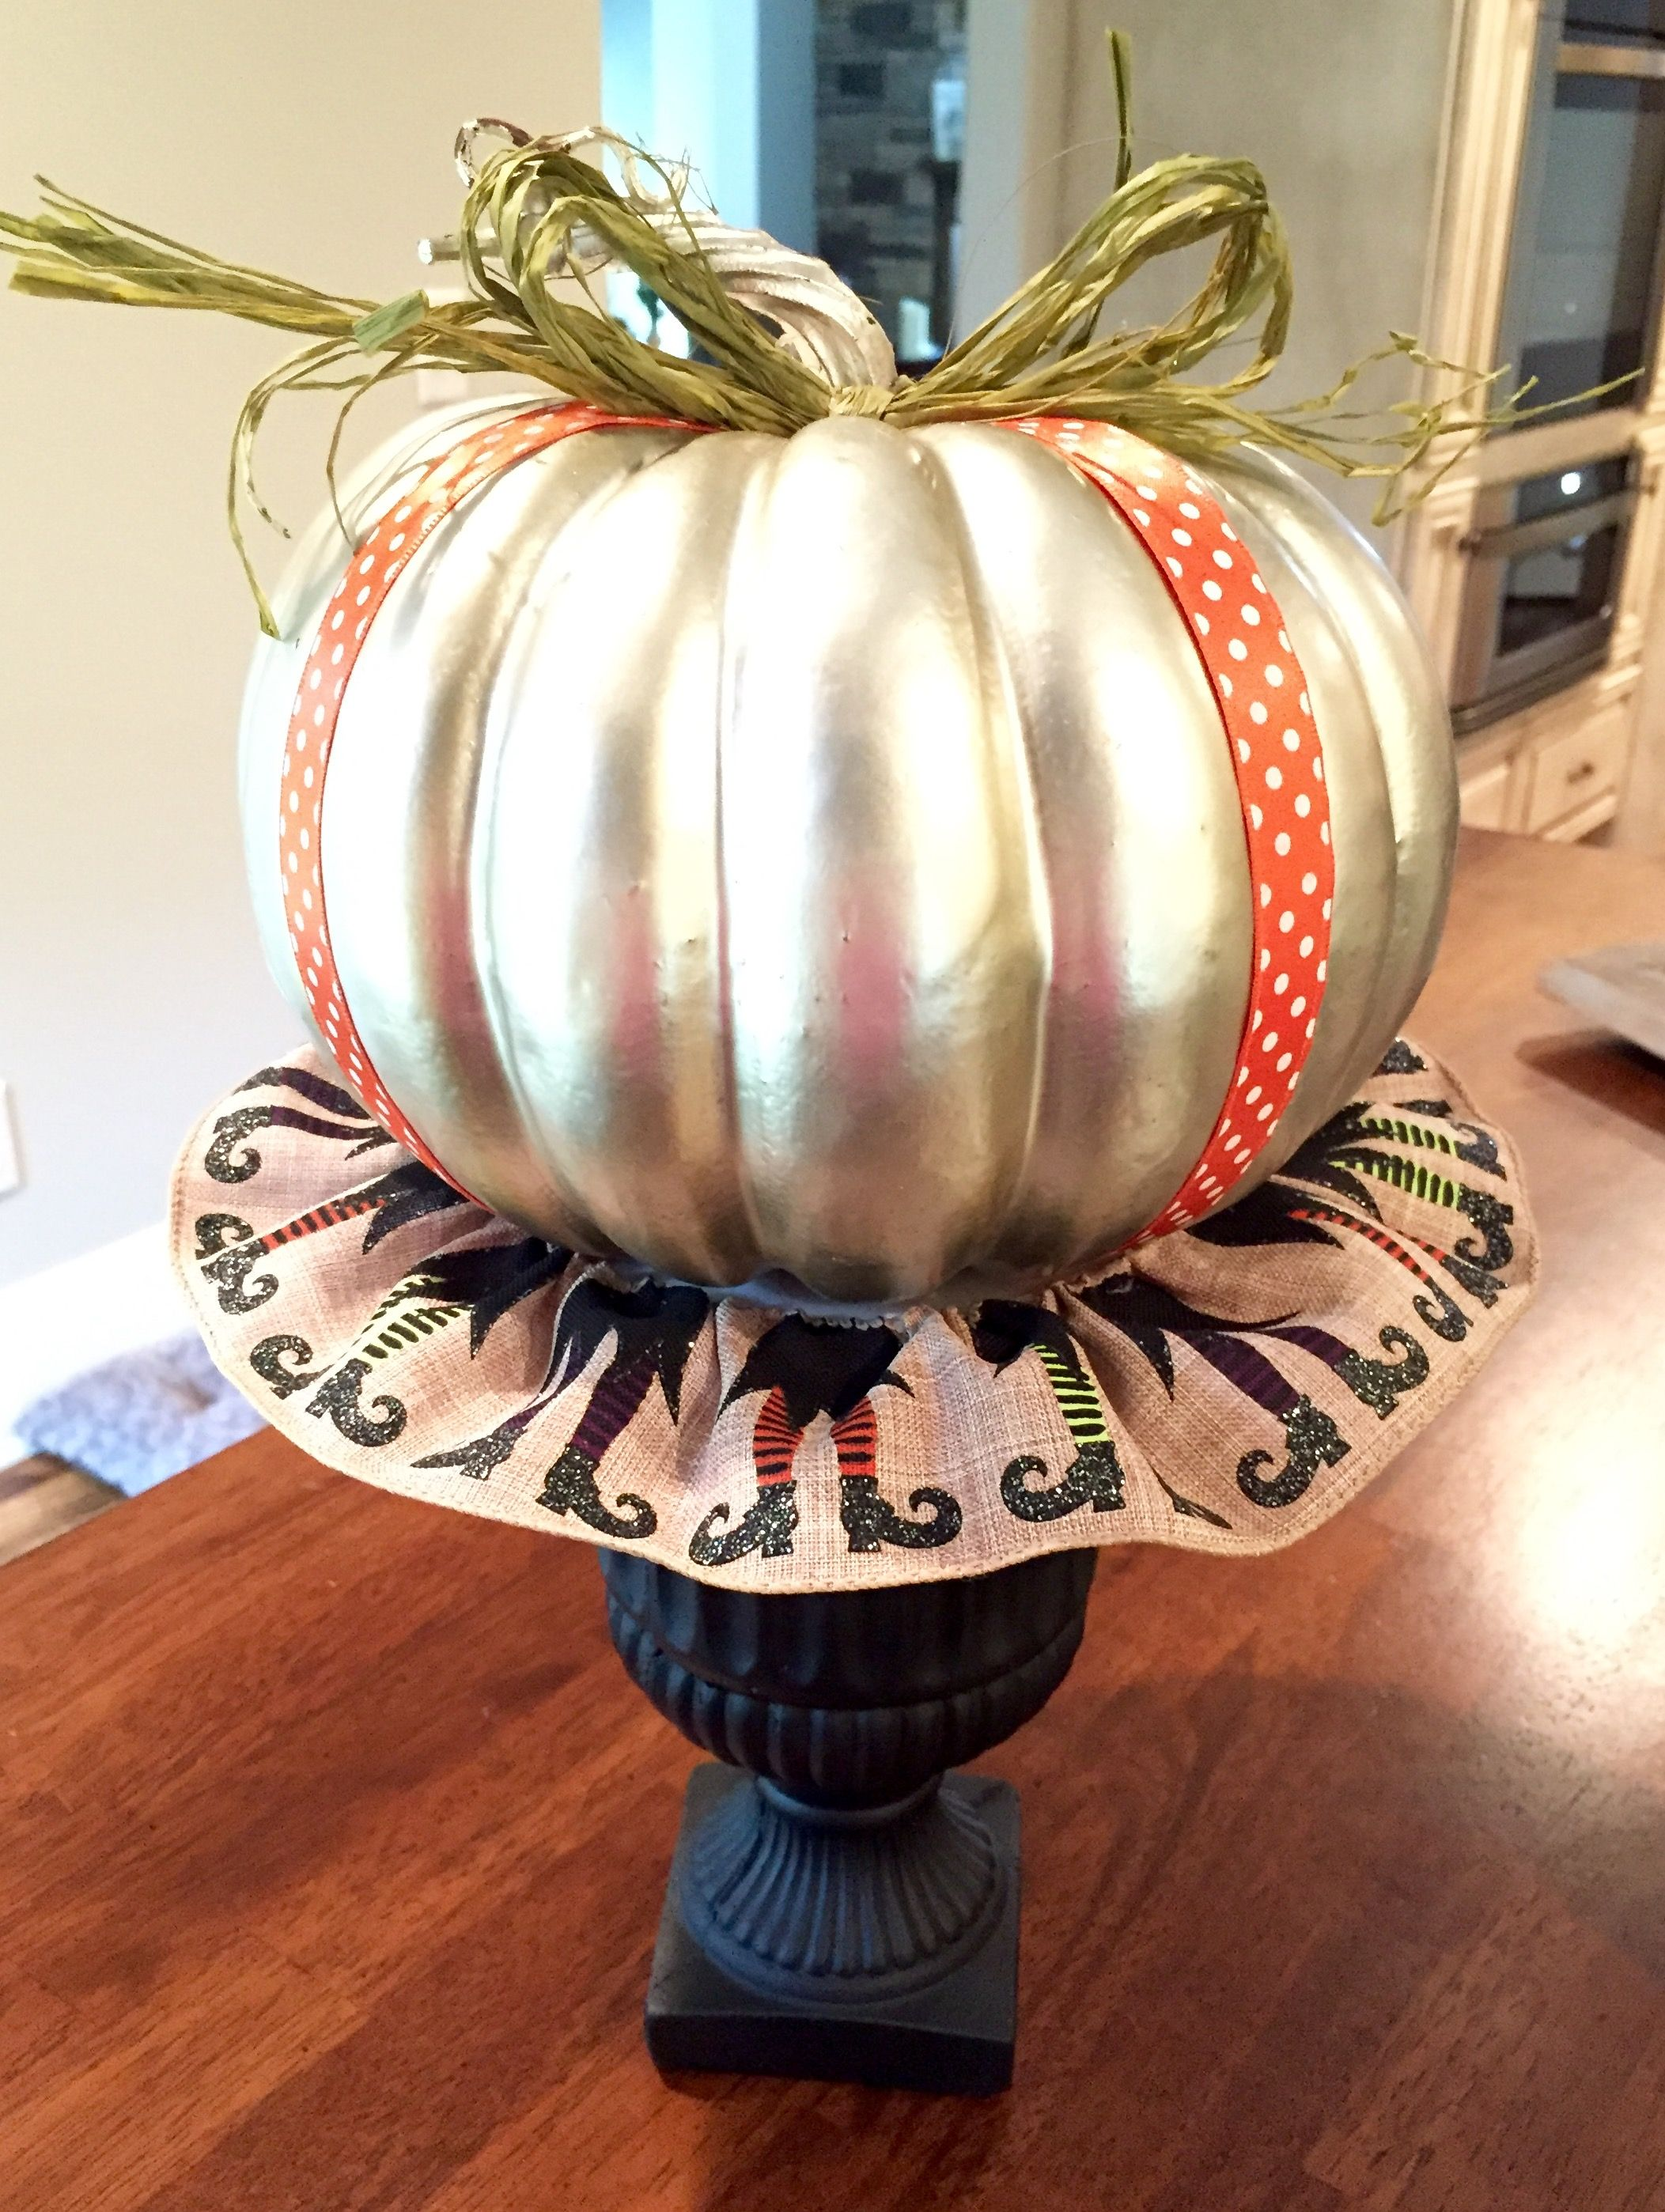 Halloween Urn Decorations Beauteous Turn A Basic Black Urn Into A Pretty Halloween Table Top Decorating Inspiration